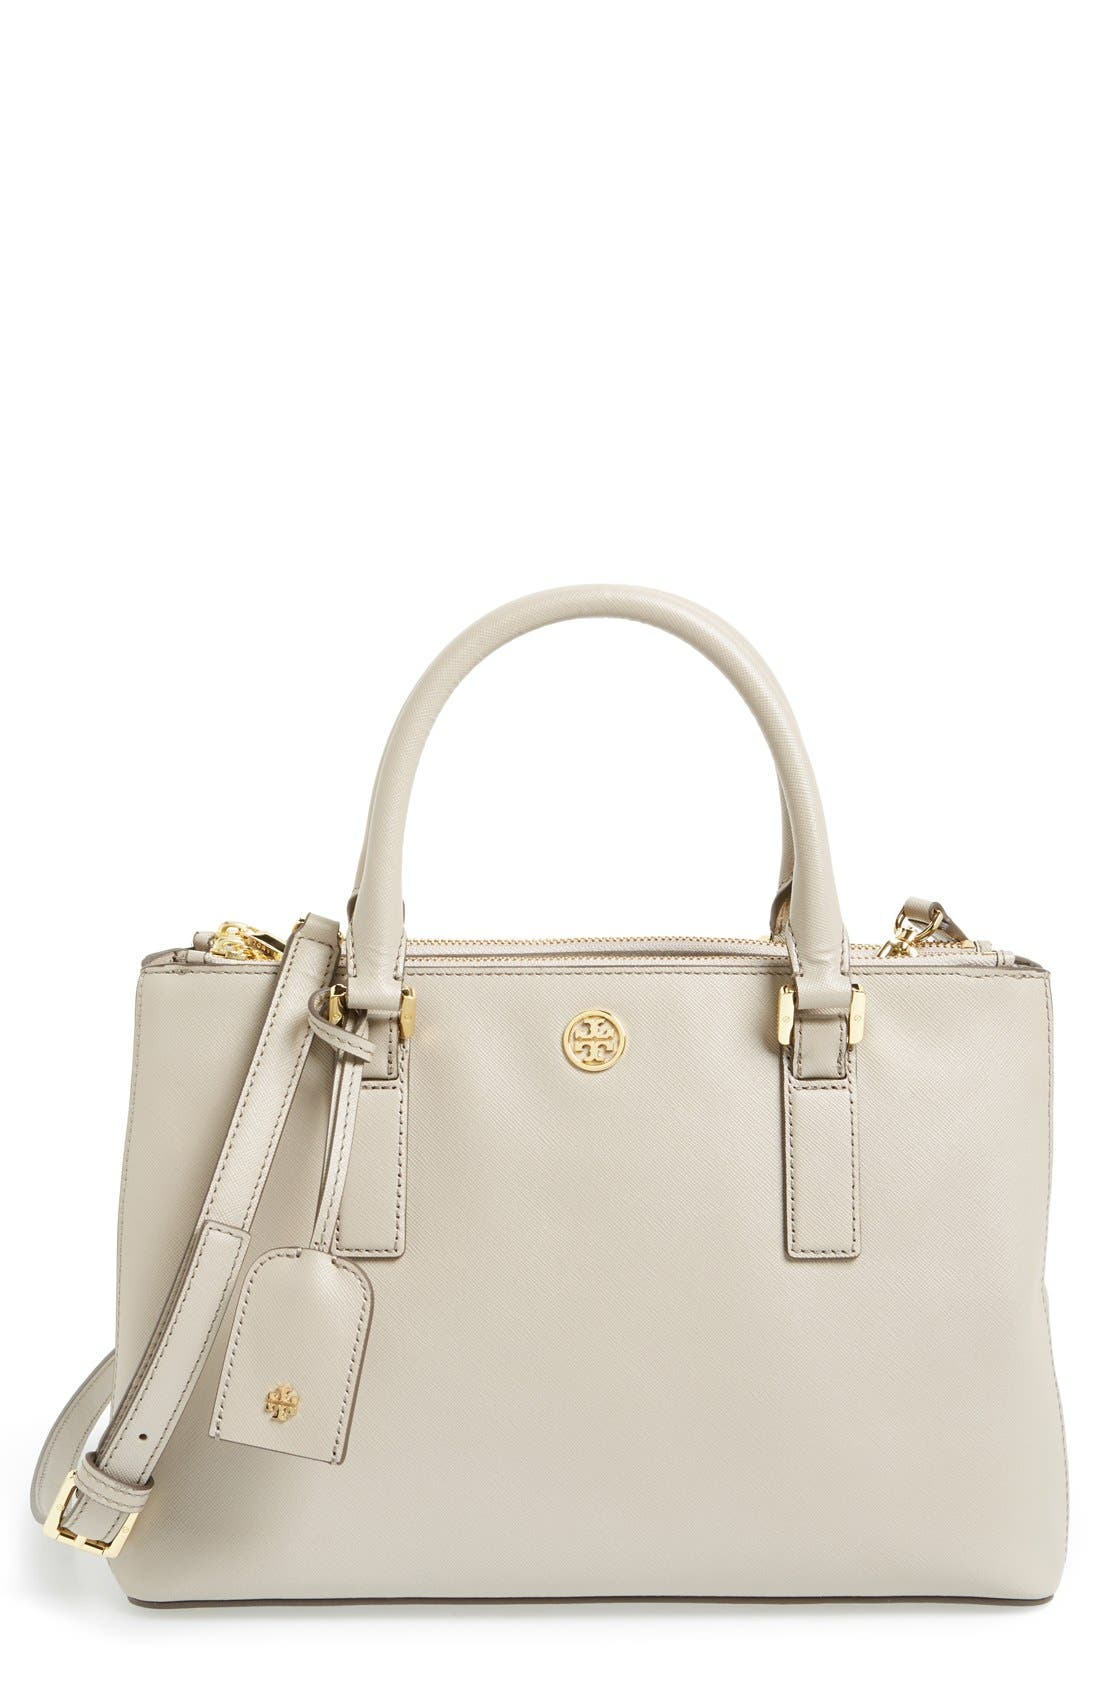 Alternate Image 1 Selected - Tory Burch 'Robinson - Mini' Double Zip Leather Tote